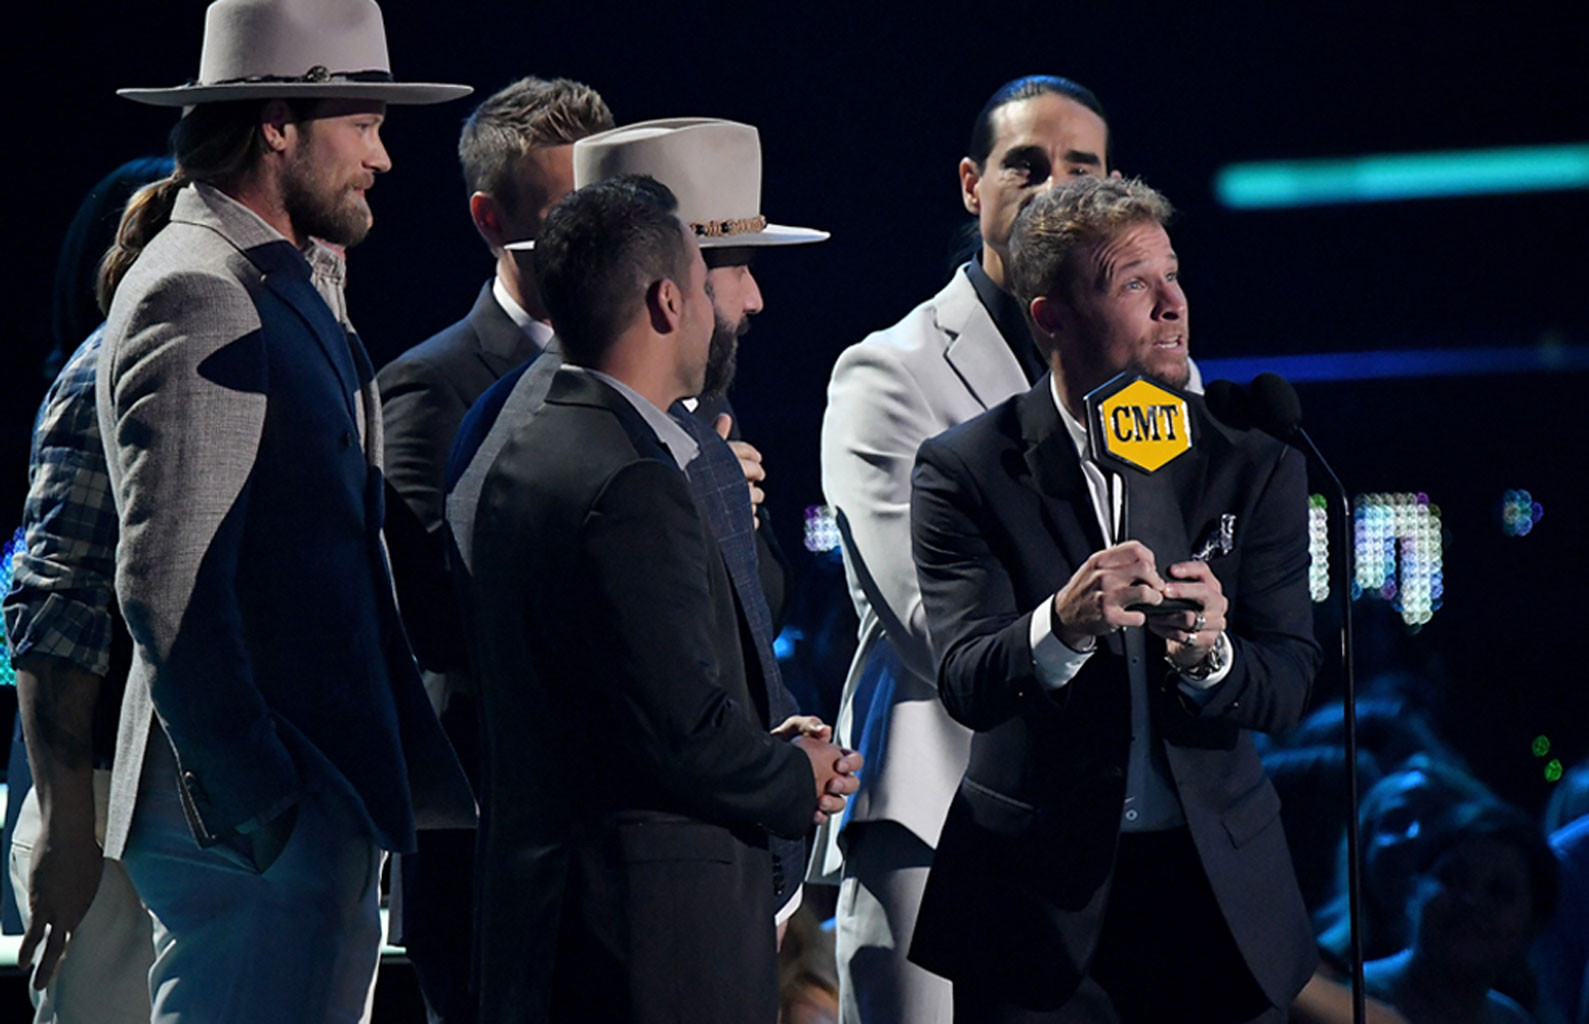 Florida Georgia Line, The Backstreet Boys, Winners, 2018 CMT Awards